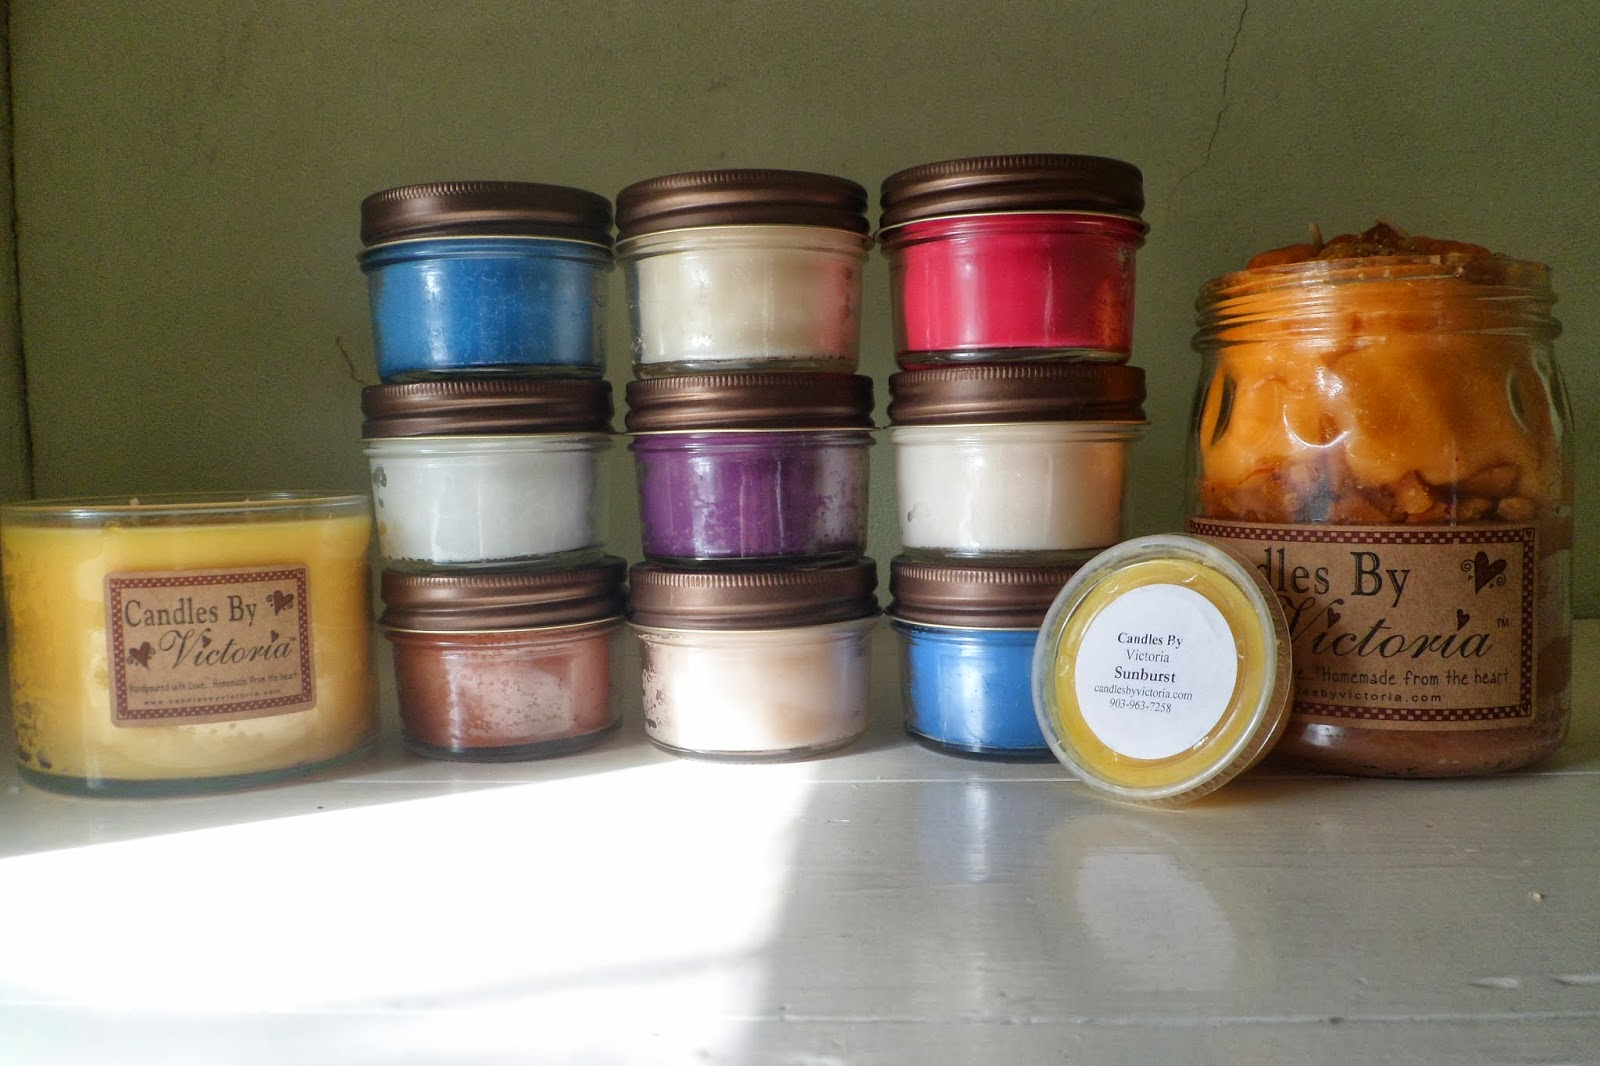 nutty scent of Coconut Jennyfer/'s Candles with the sweet